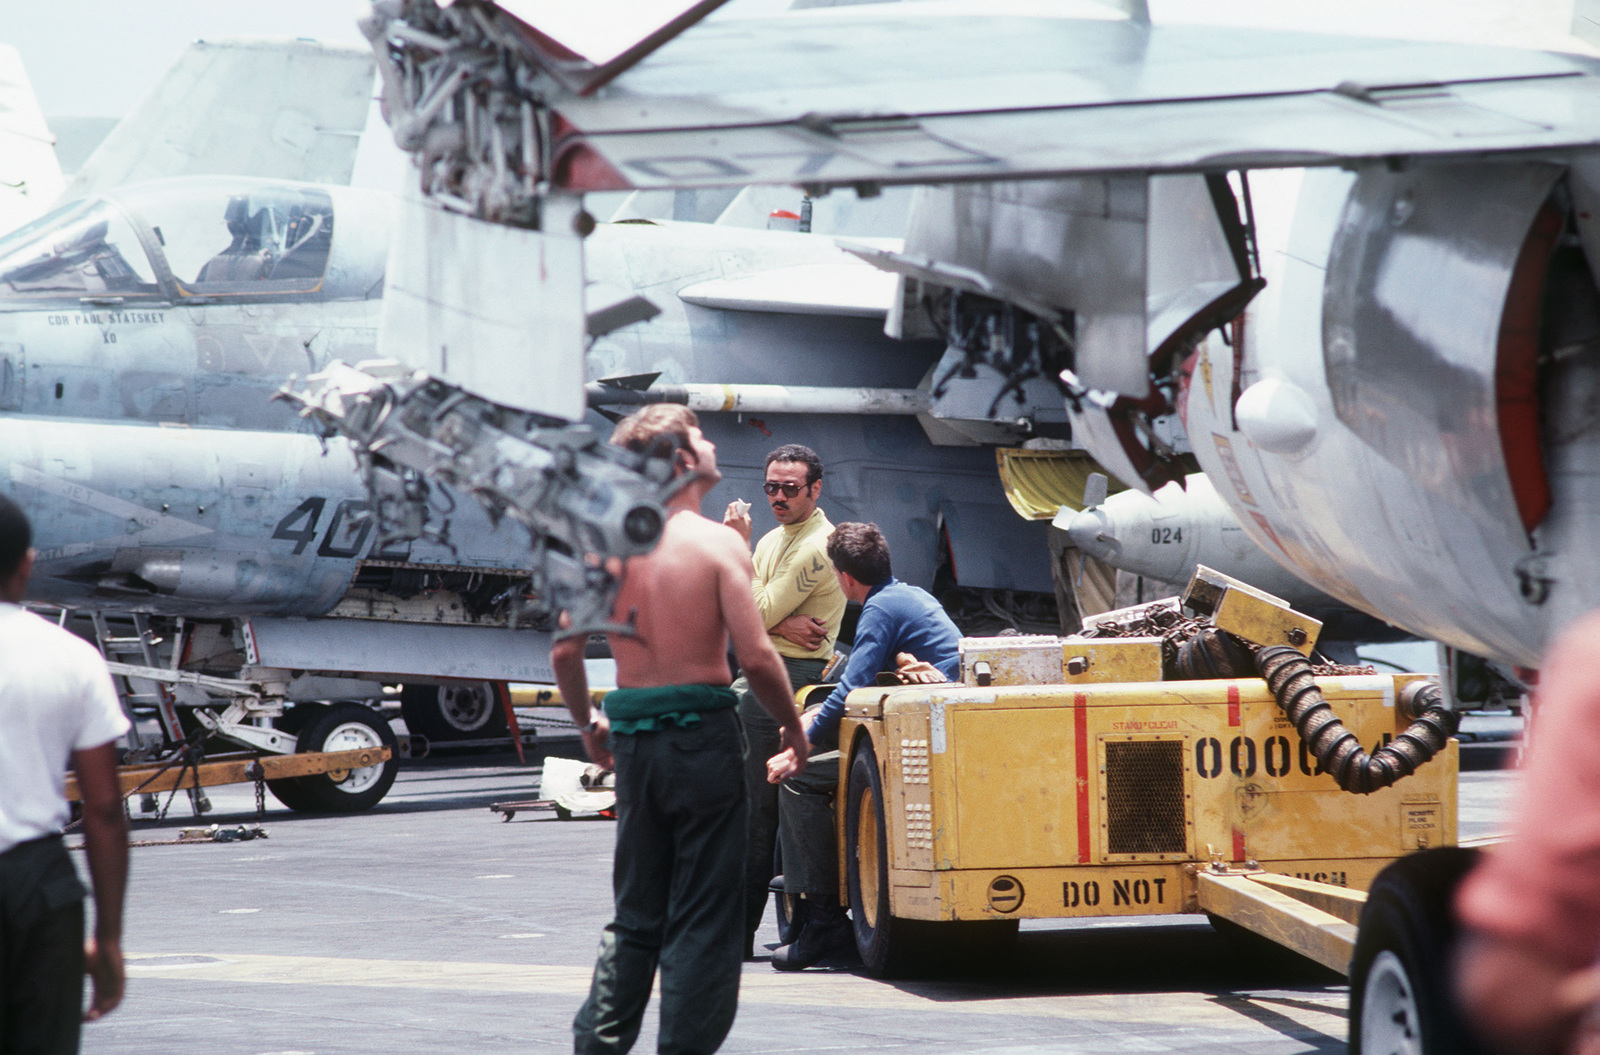 Maintenance is performed on A-7 Corsair II aircraft aboard the aircraft carrier USS MIDWAY (CV 41)